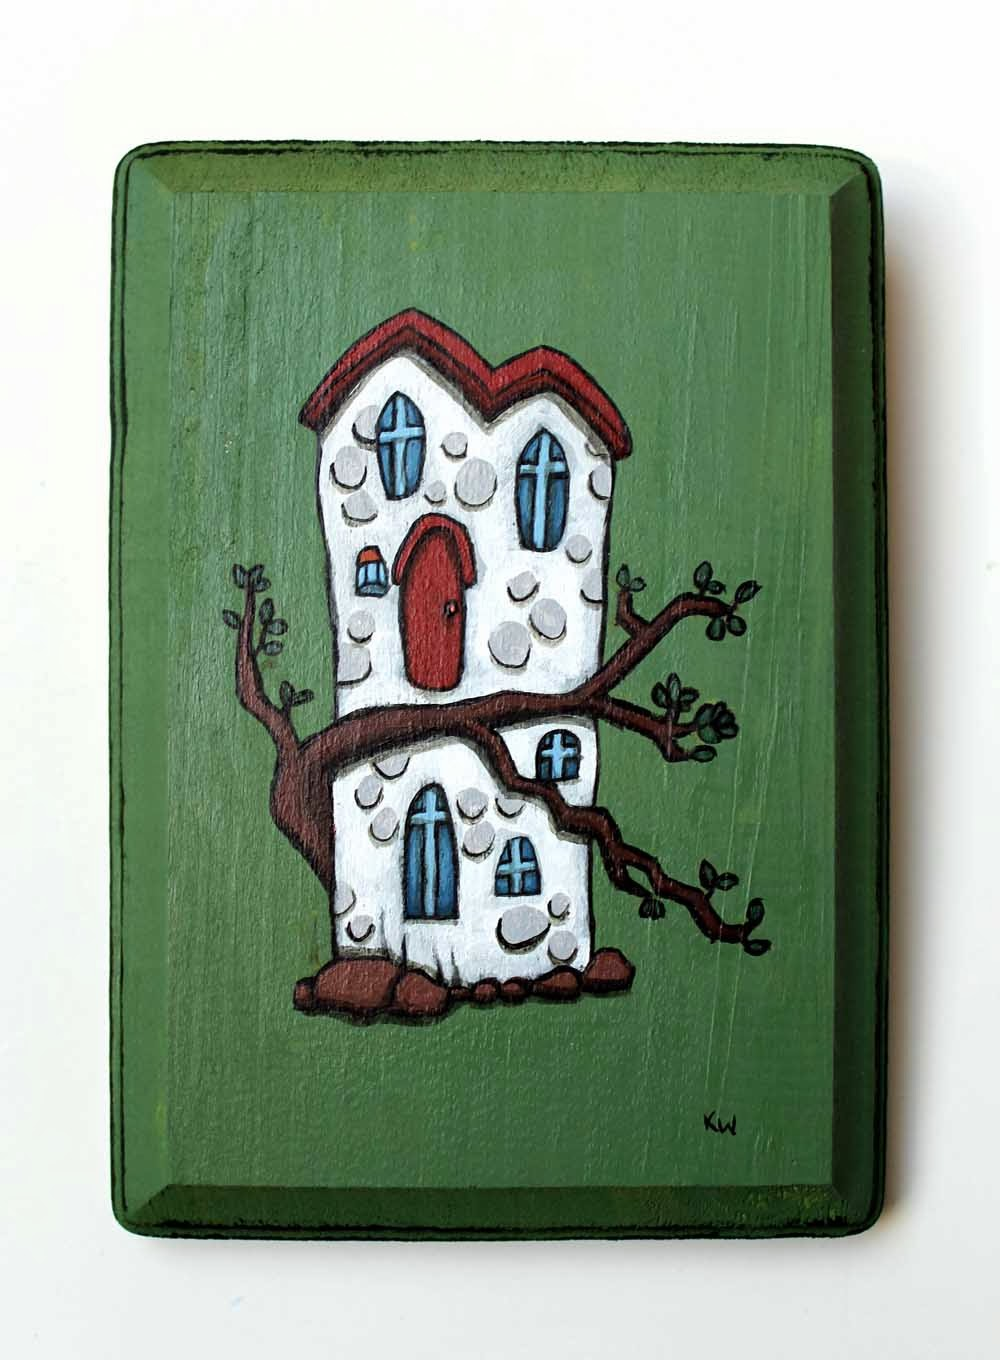 https://www.etsy.com/listing/172297185/stone-house-small-original-wall-art?ref=shop_home_active